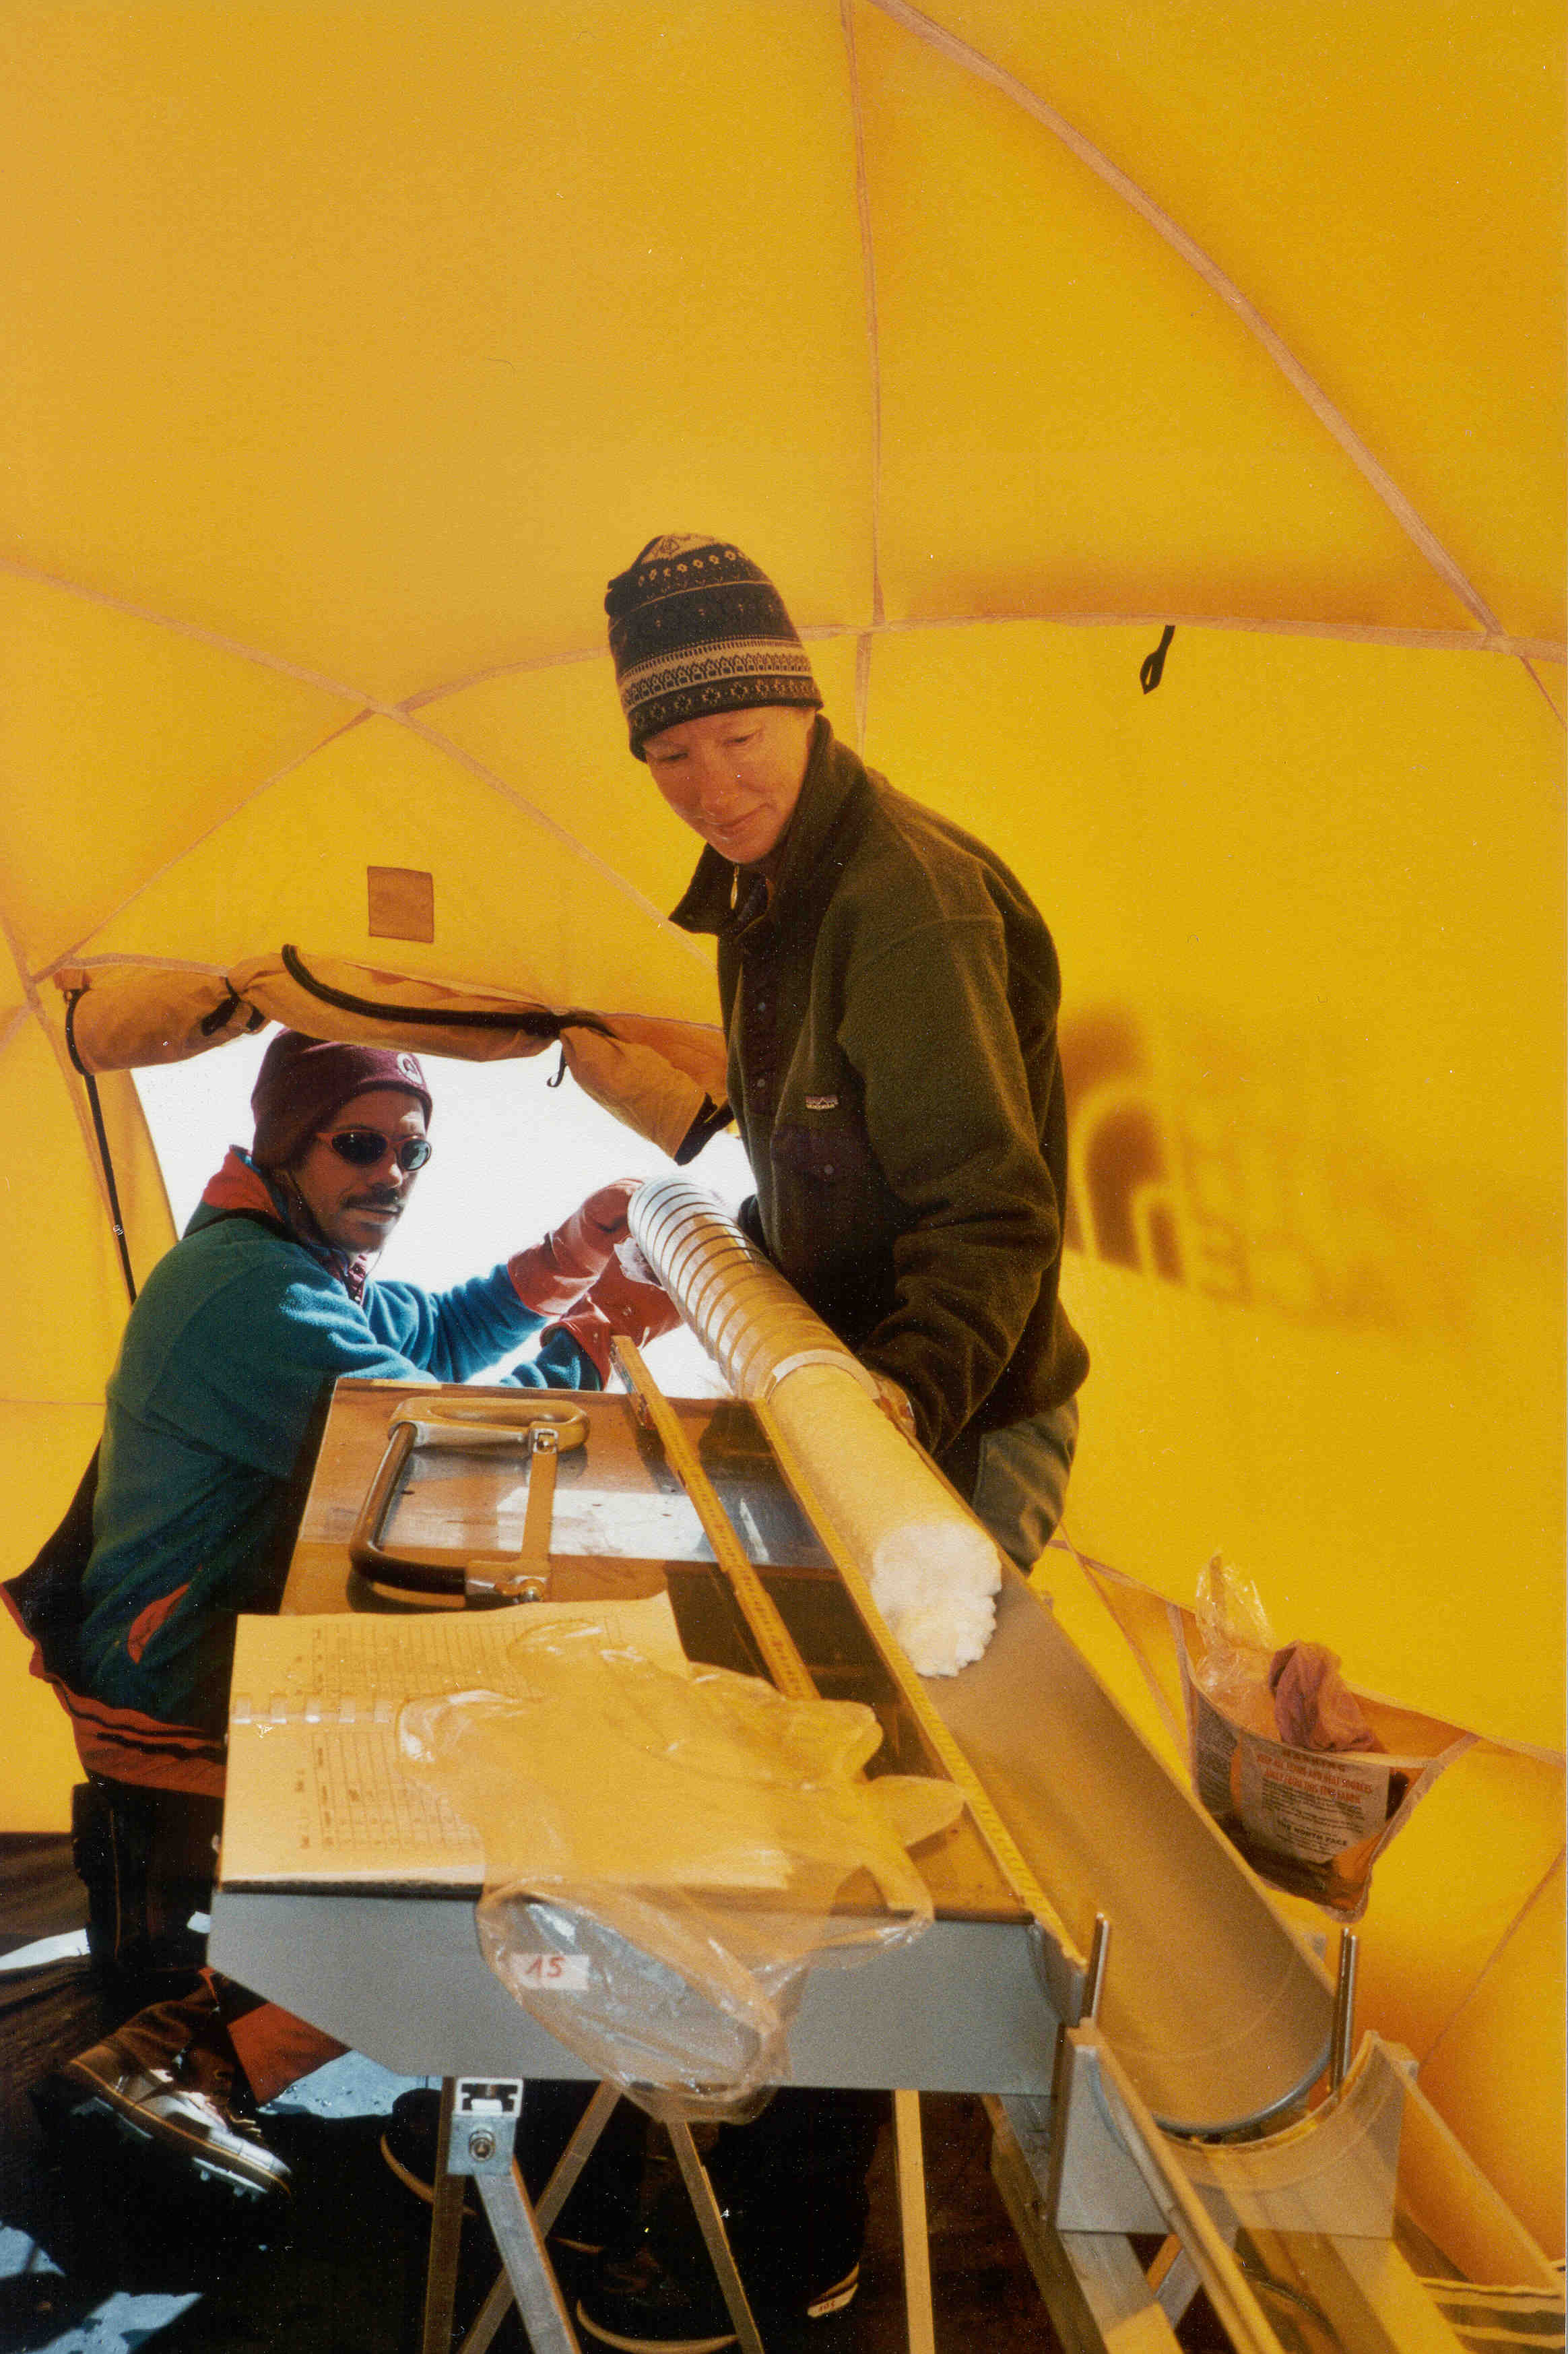 Climate research in the Altai Mountains: the mountain guide Beat Rufibach and PSI researcher Margit Schwikowski remove the ice core from the drill (PSI/Susanne Olivier)